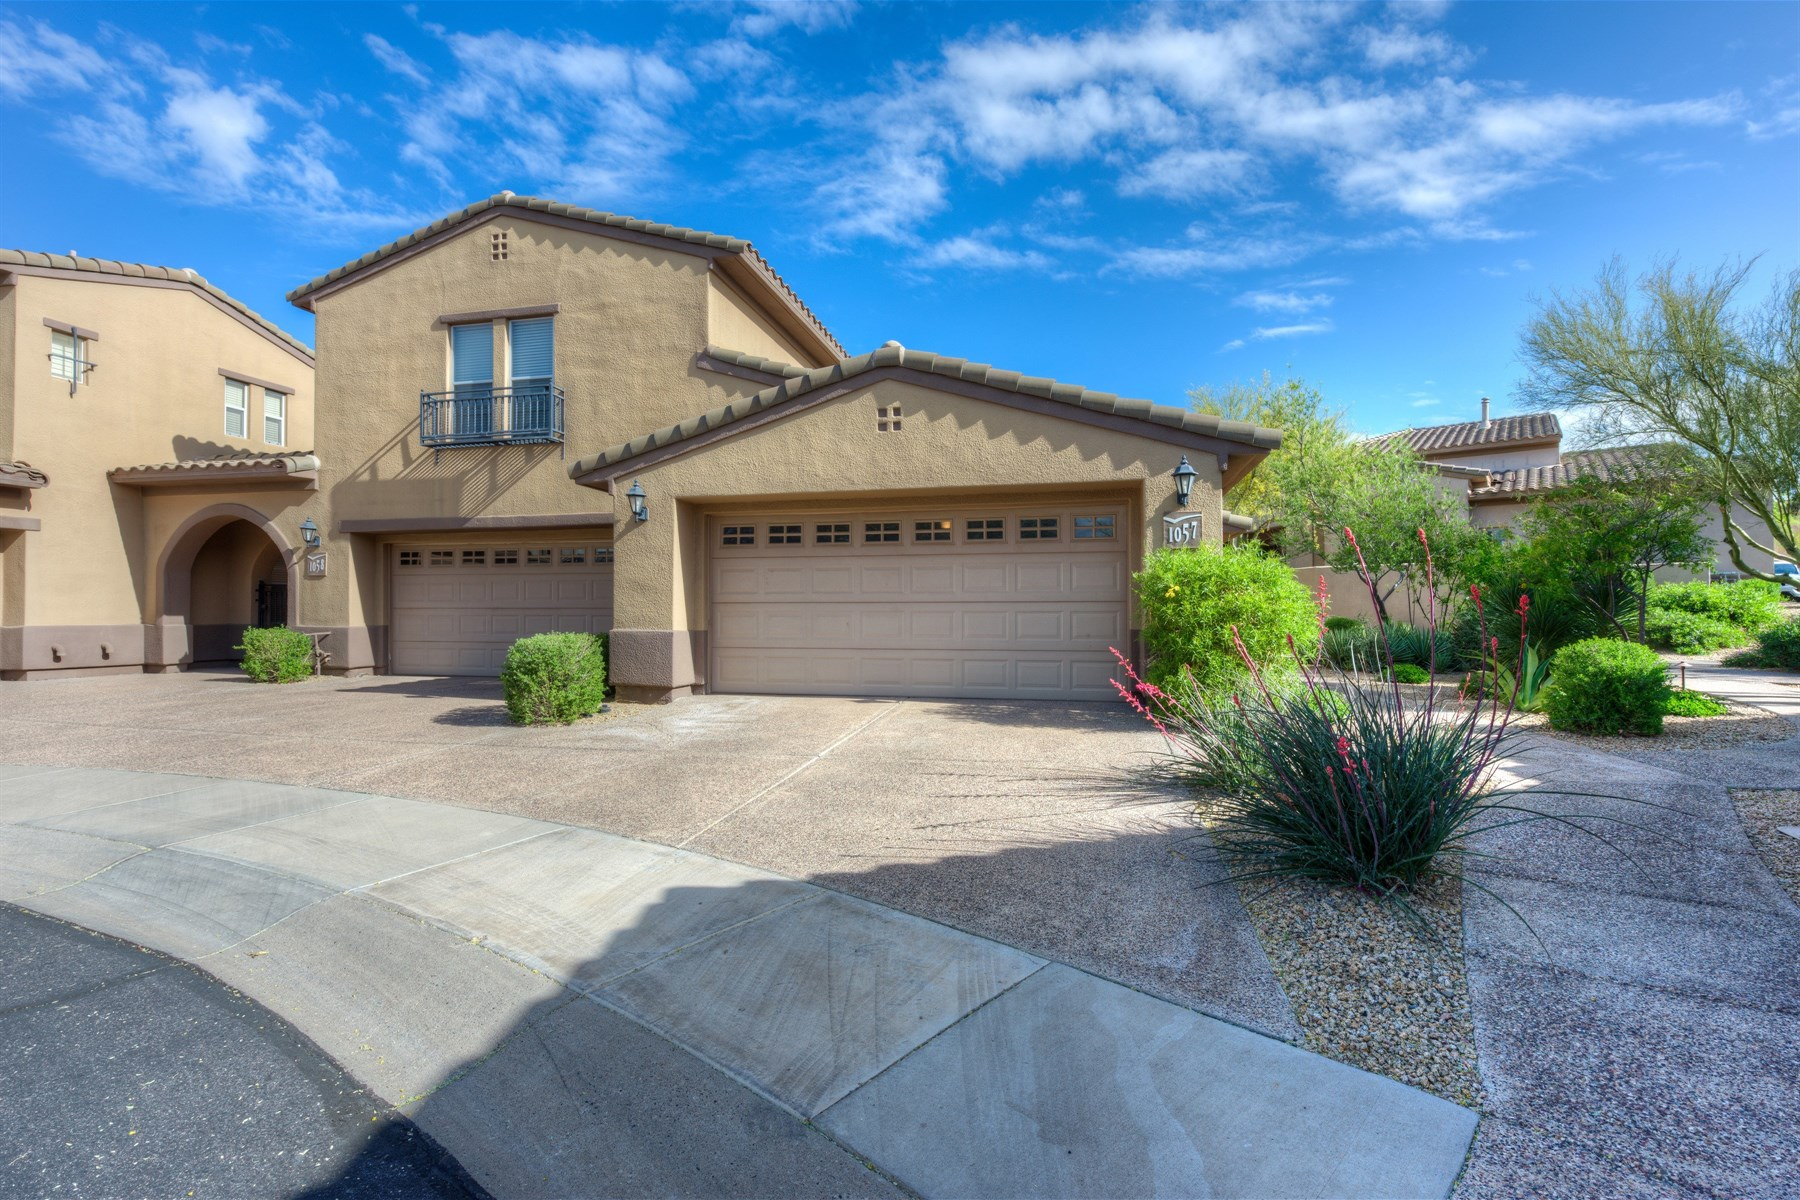 Townhouse for Sale at Avian townhome in the guard gate of Grayhawk's Raptor Retreat 20802 N Grayhawk Dr #1057 Scottsdale, Arizona, 85255 United States